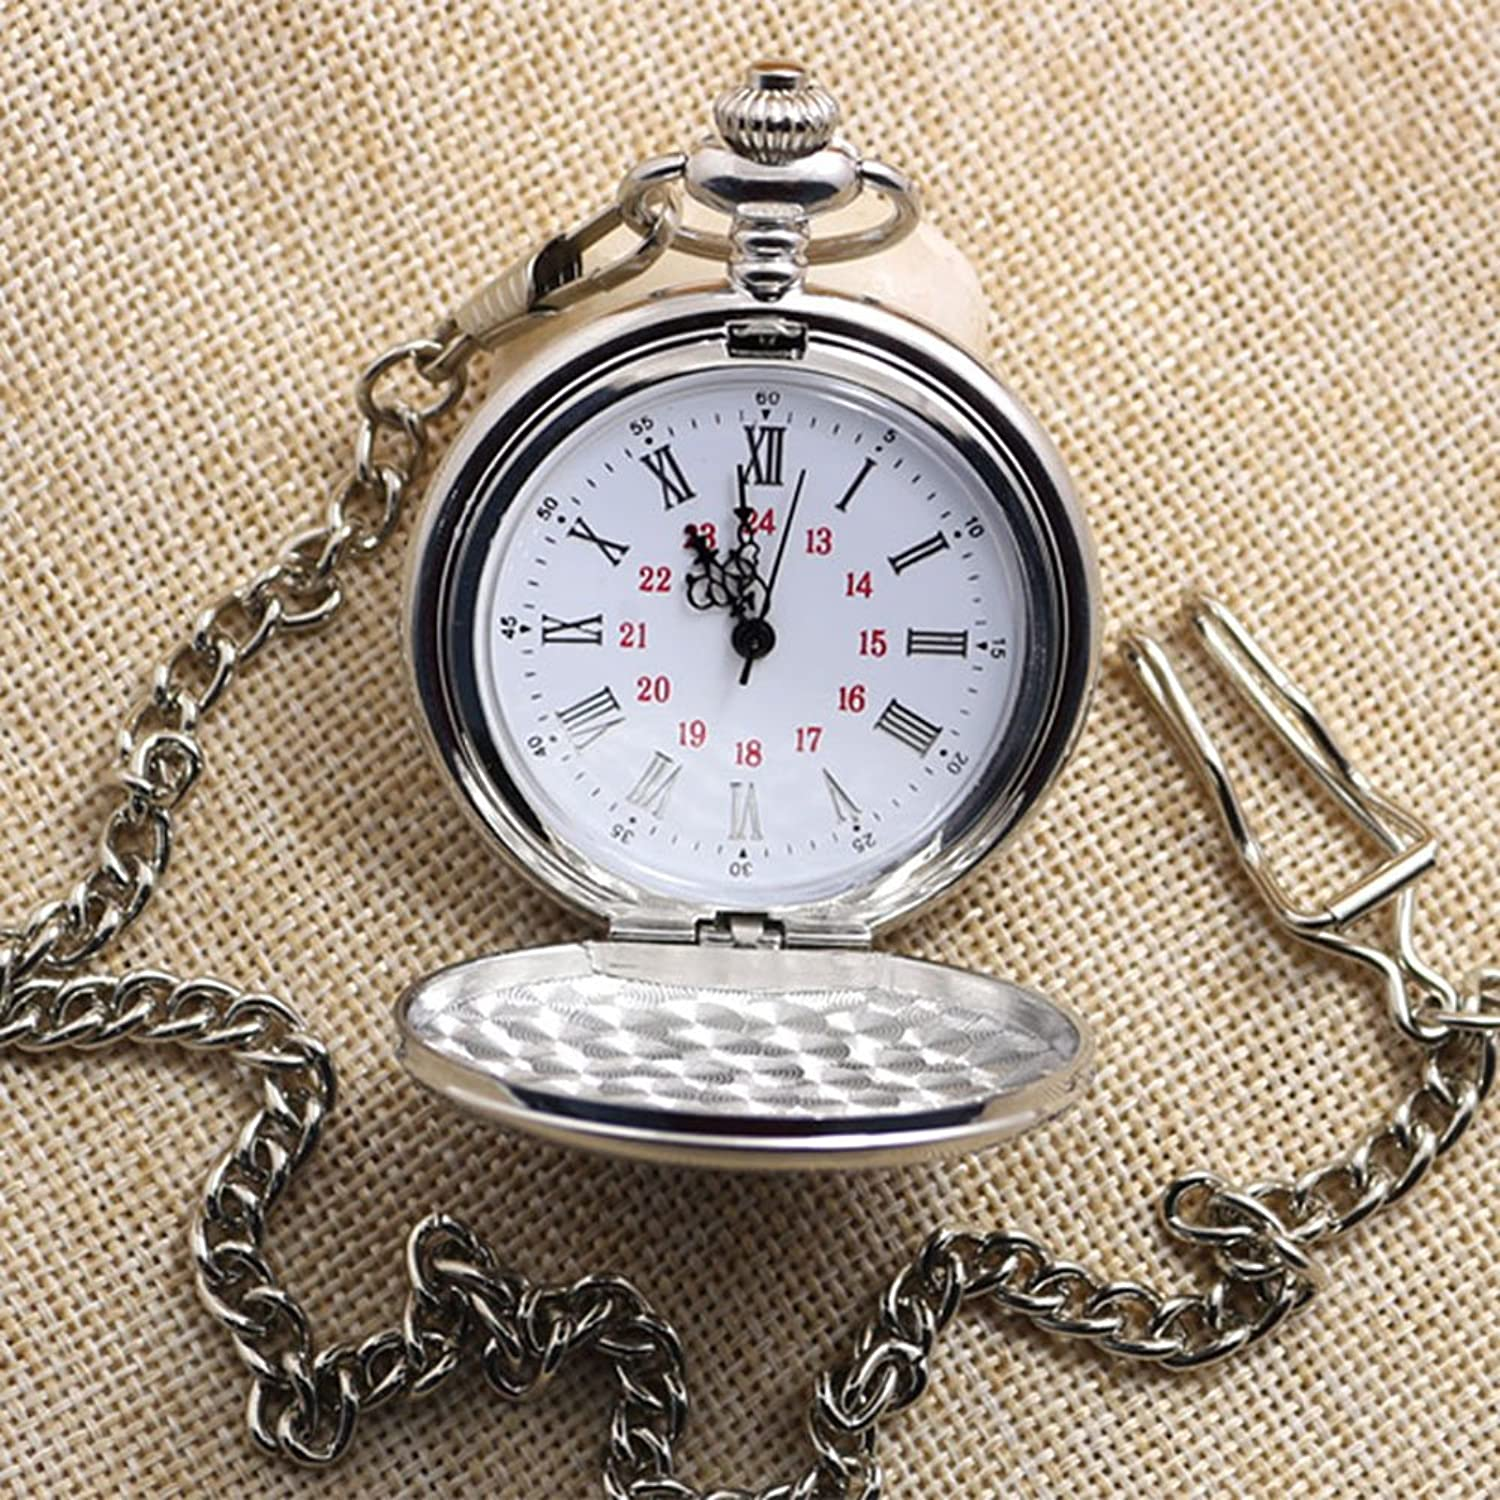 1920s Style Mens Vests WIOR Classic Smooth Vintage Pocket Watch Sliver Steel Men Watch with 14'' Chain for Xmas Fathers Day Gift $10.99 AT vintagedancer.com